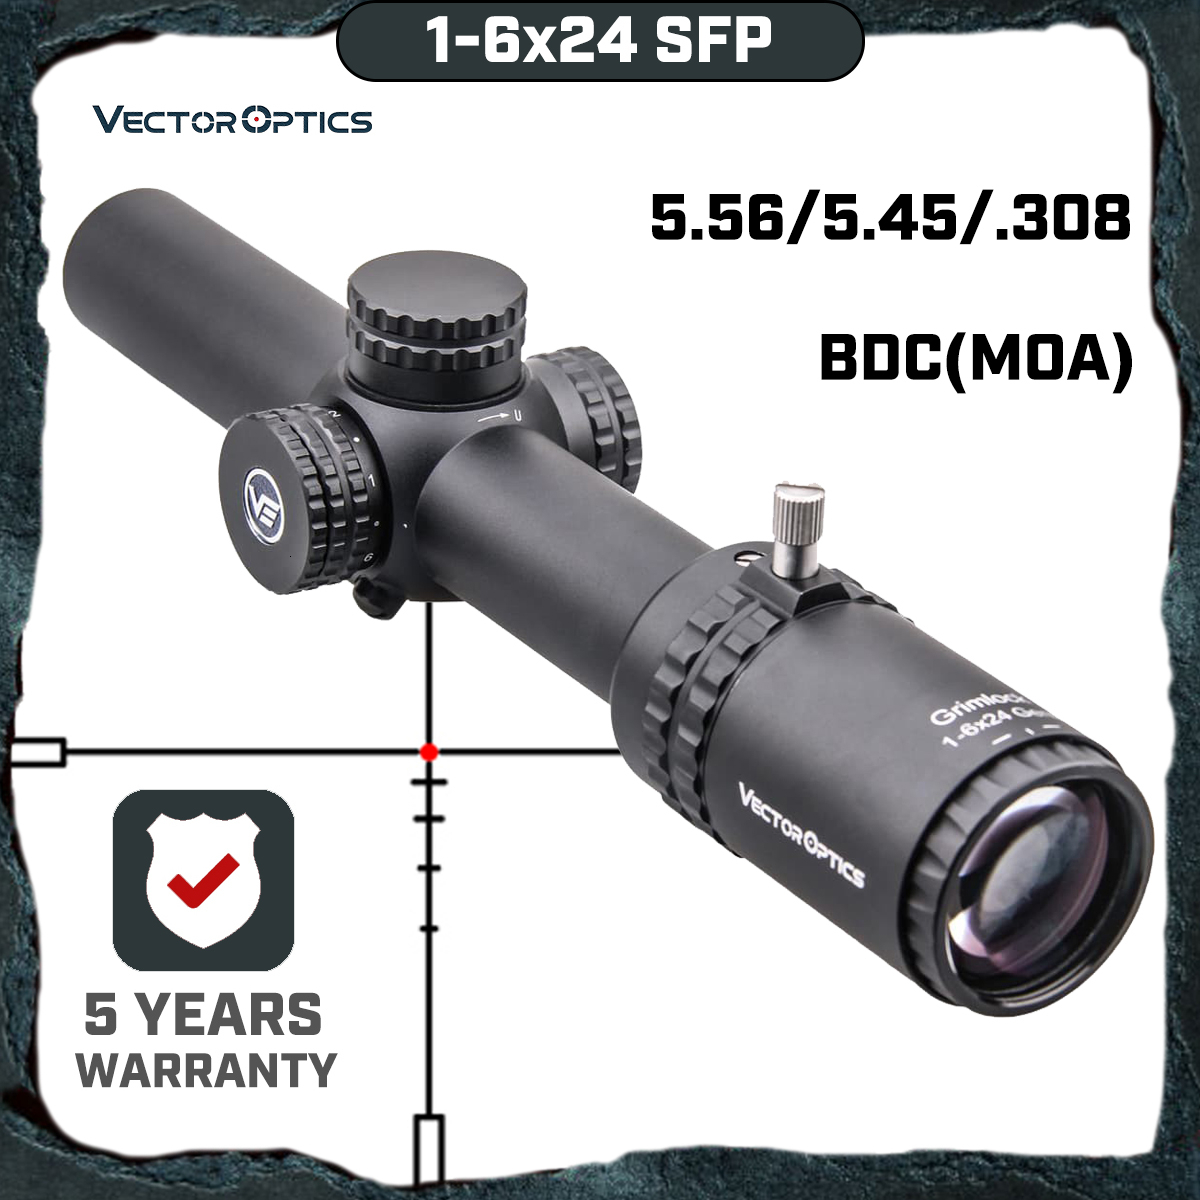 Vector Optics Gen2 Grimlock 1-6x24 BDC (MOA) Ballistic Reticle Rifle Scope Center Dot Illuminated CQB Riflescope .223 AR15 .308